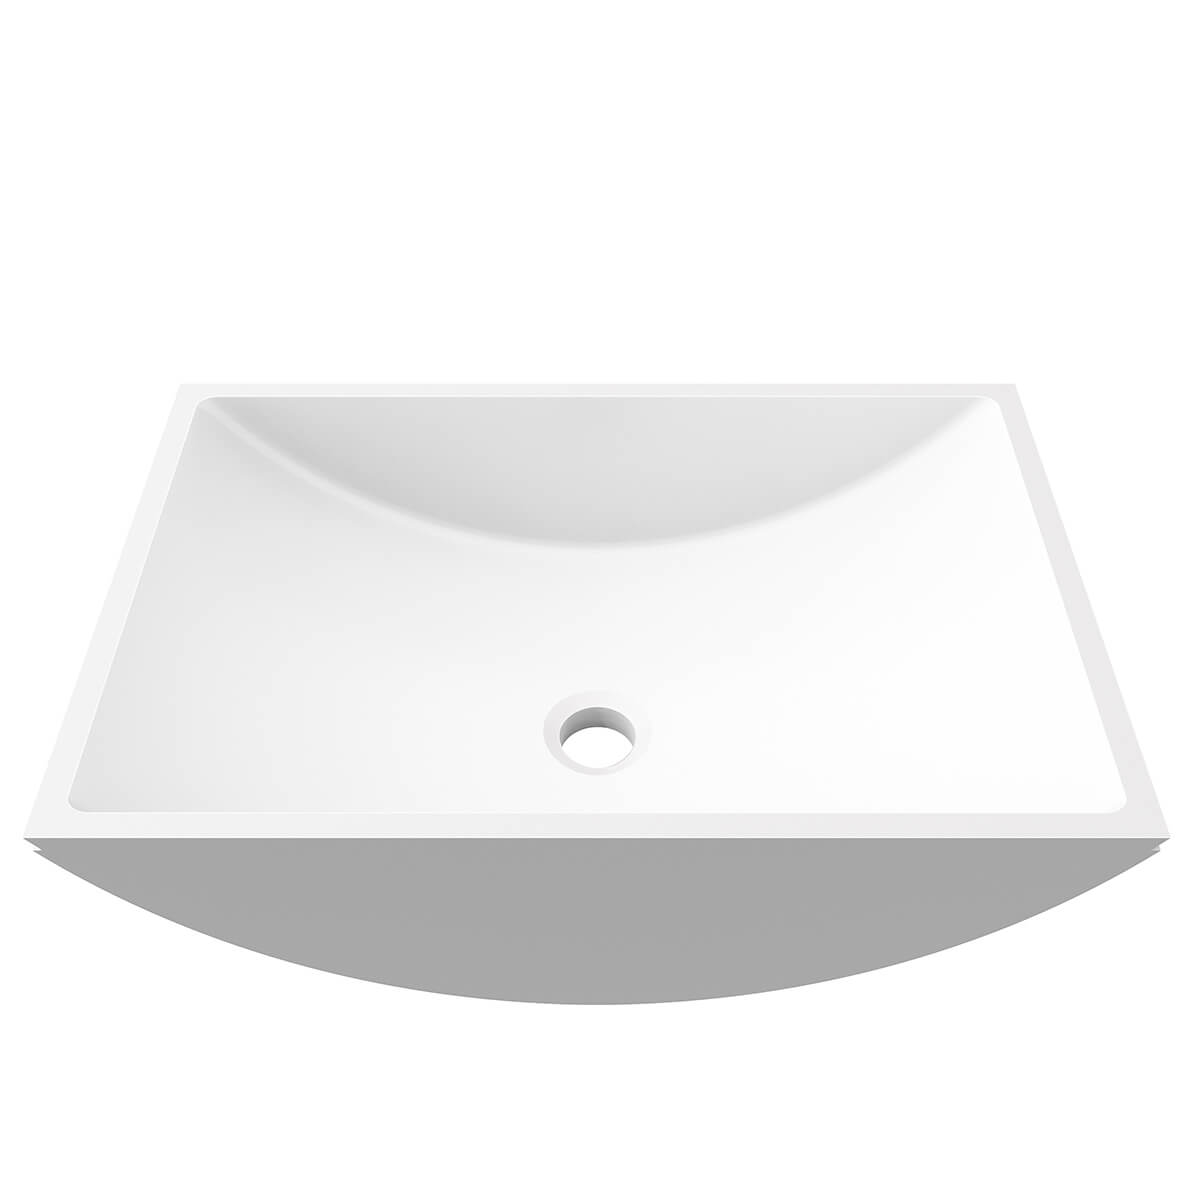 CASF Corian basin refresh 8420 front view